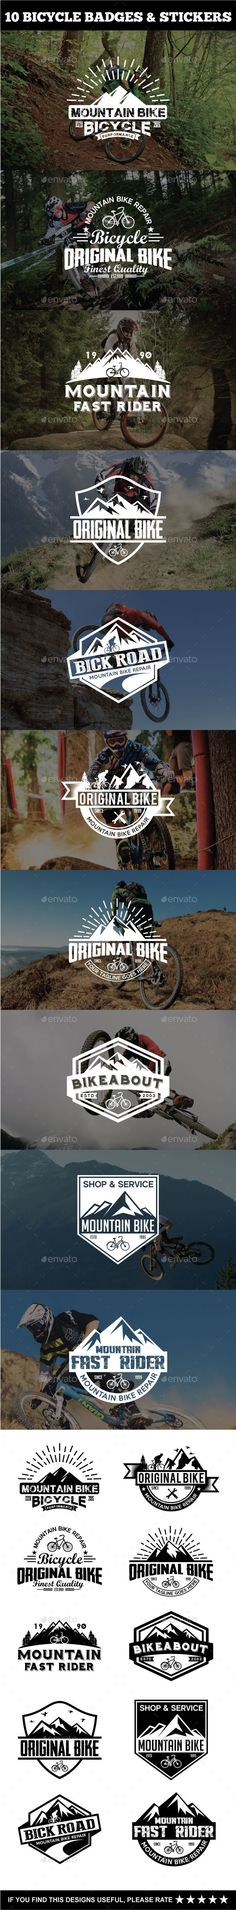 Sport Bicycle Badges & Stickers Template Vector EPS, AI #design Download: http://graphicriver.net/item/sport-bicycle-badges-stickers/14552759?ref=ksioks